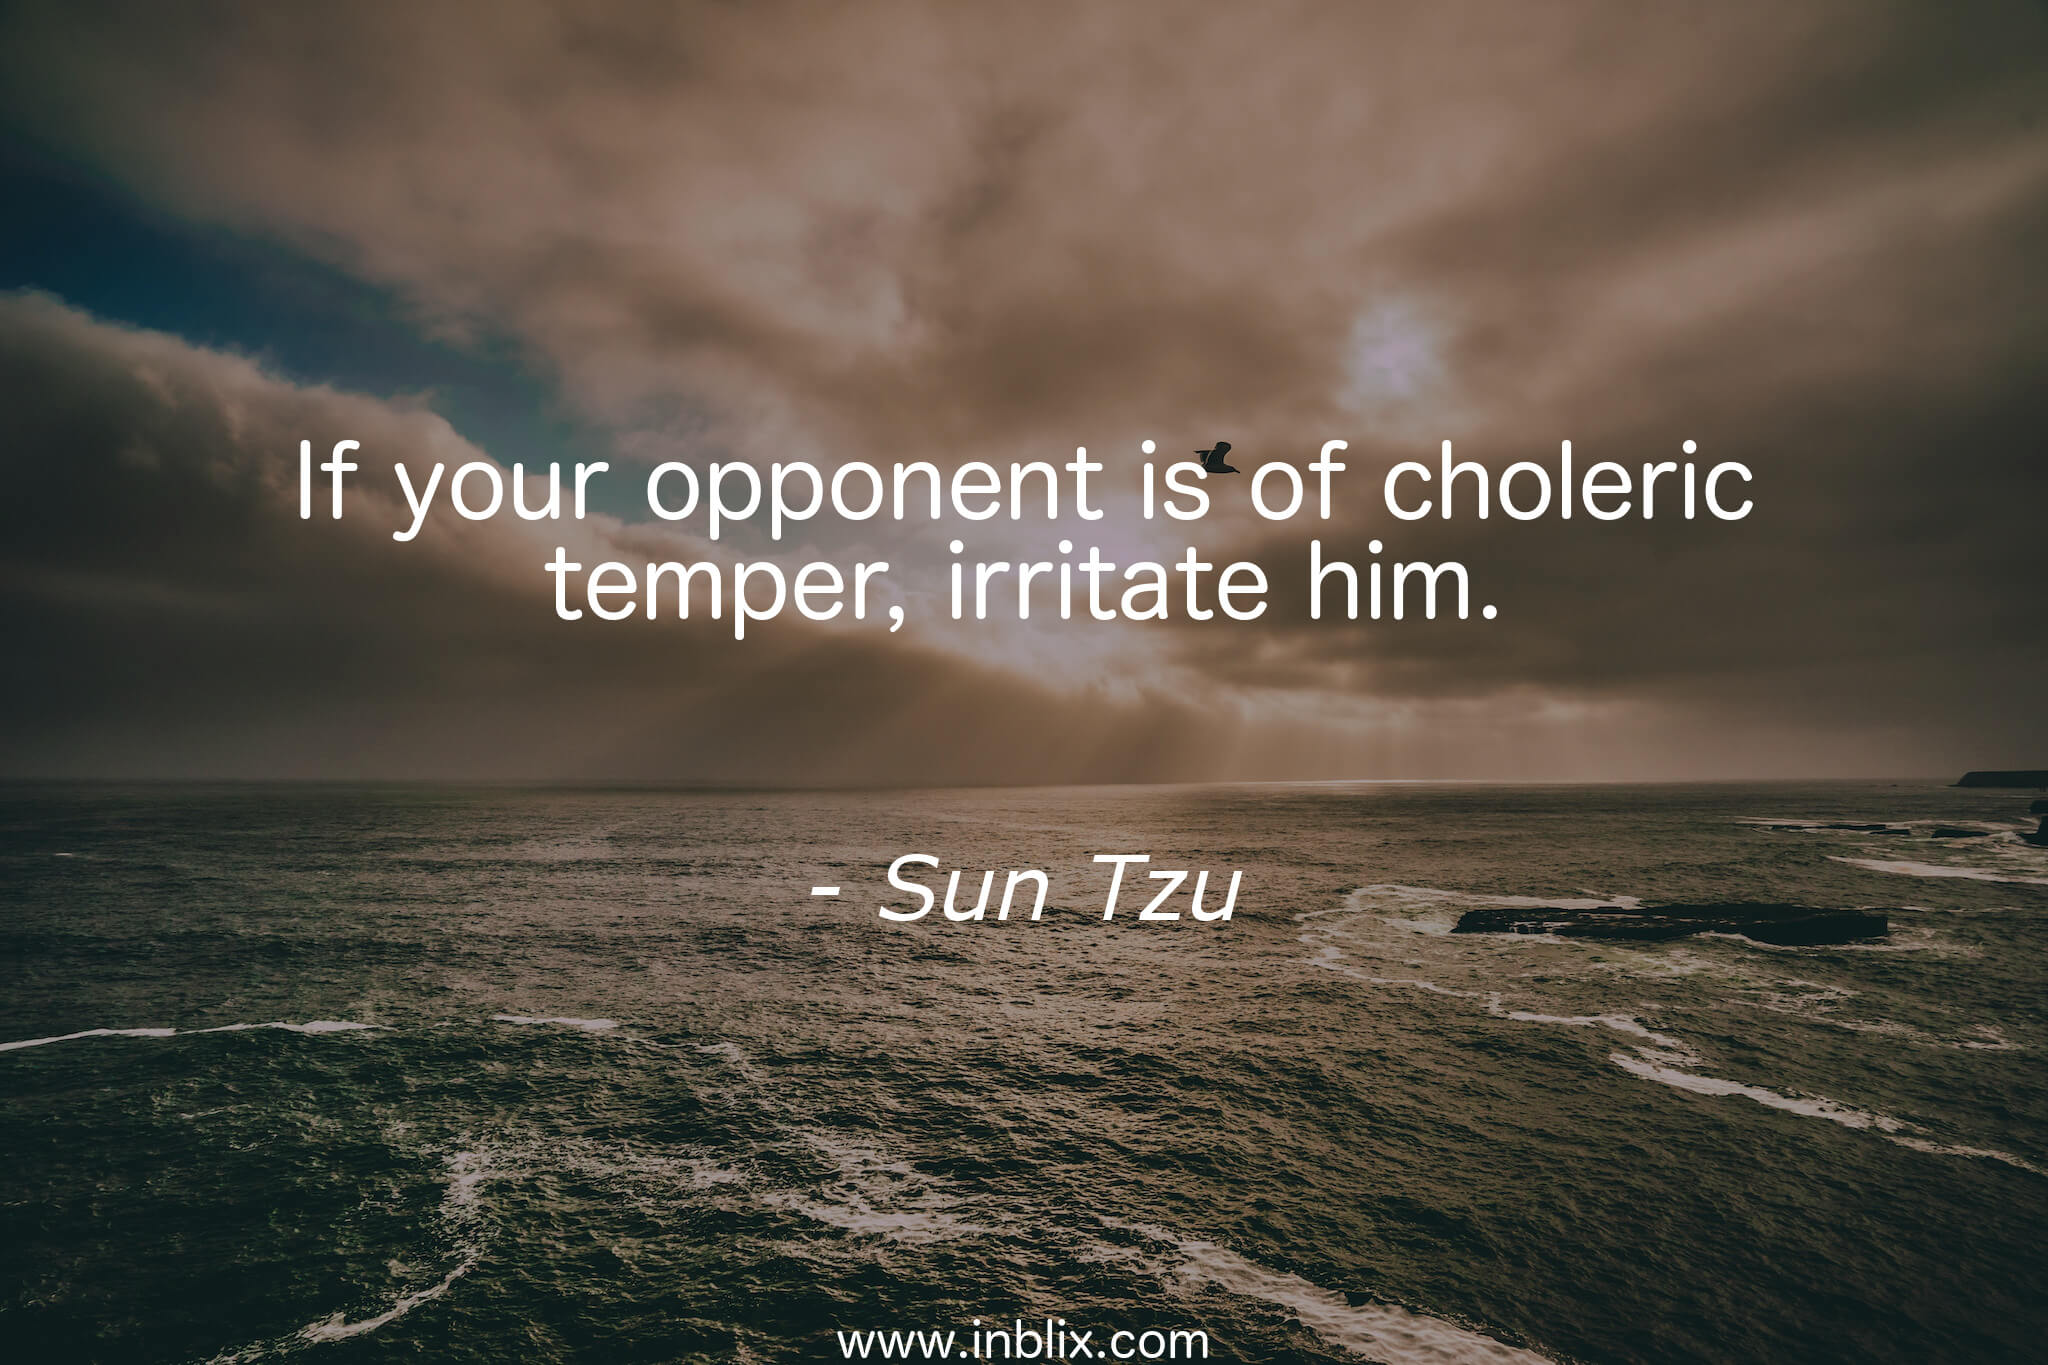 If your opponent is of choleric temper, irritate him.